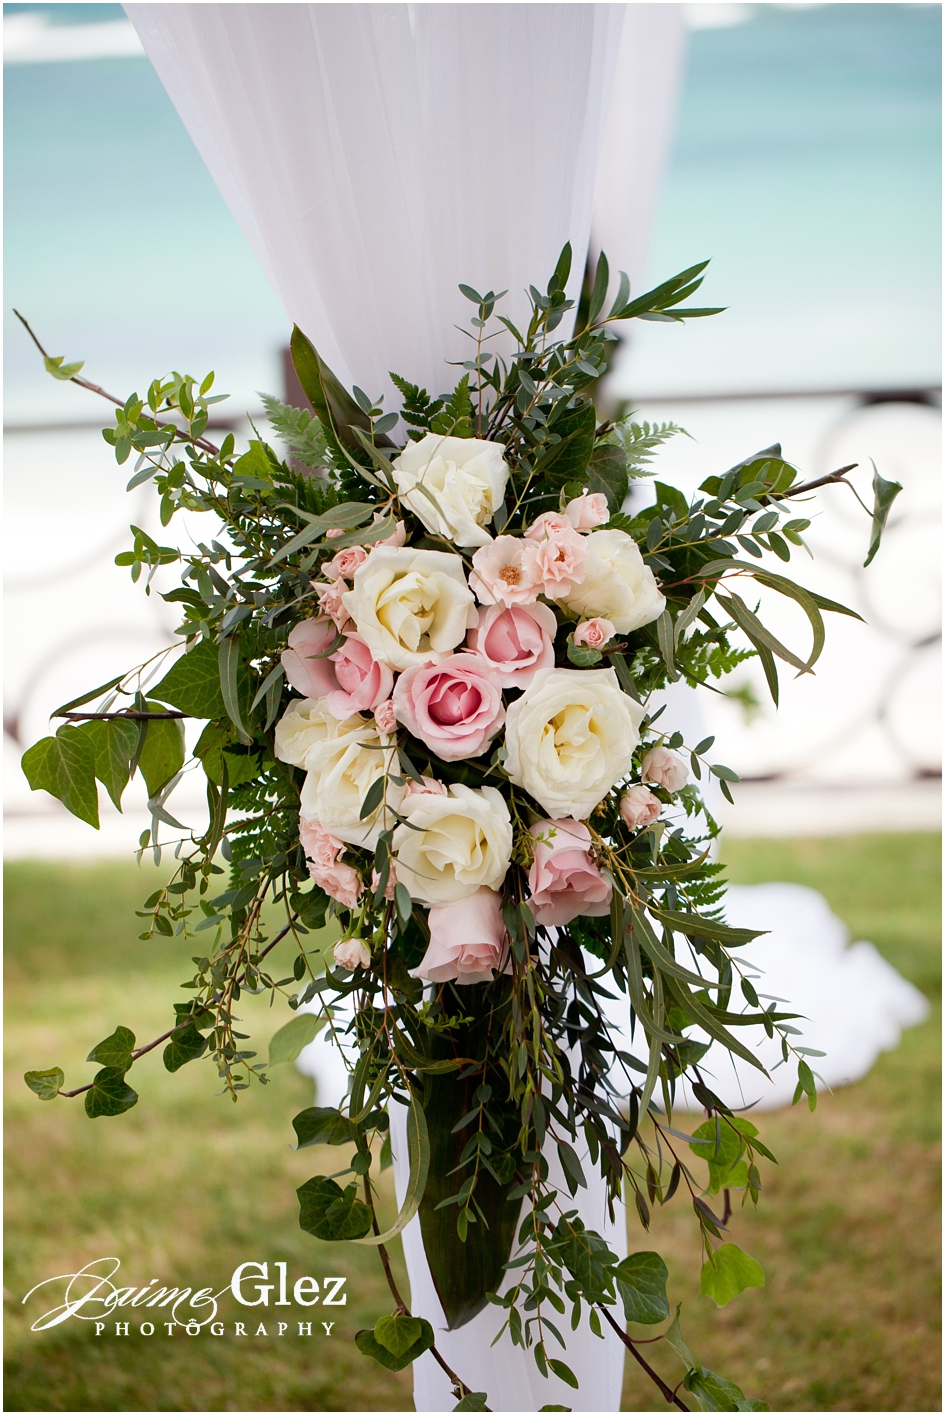 Pink & white roses always give that sweet romantic touch for wedding decor.